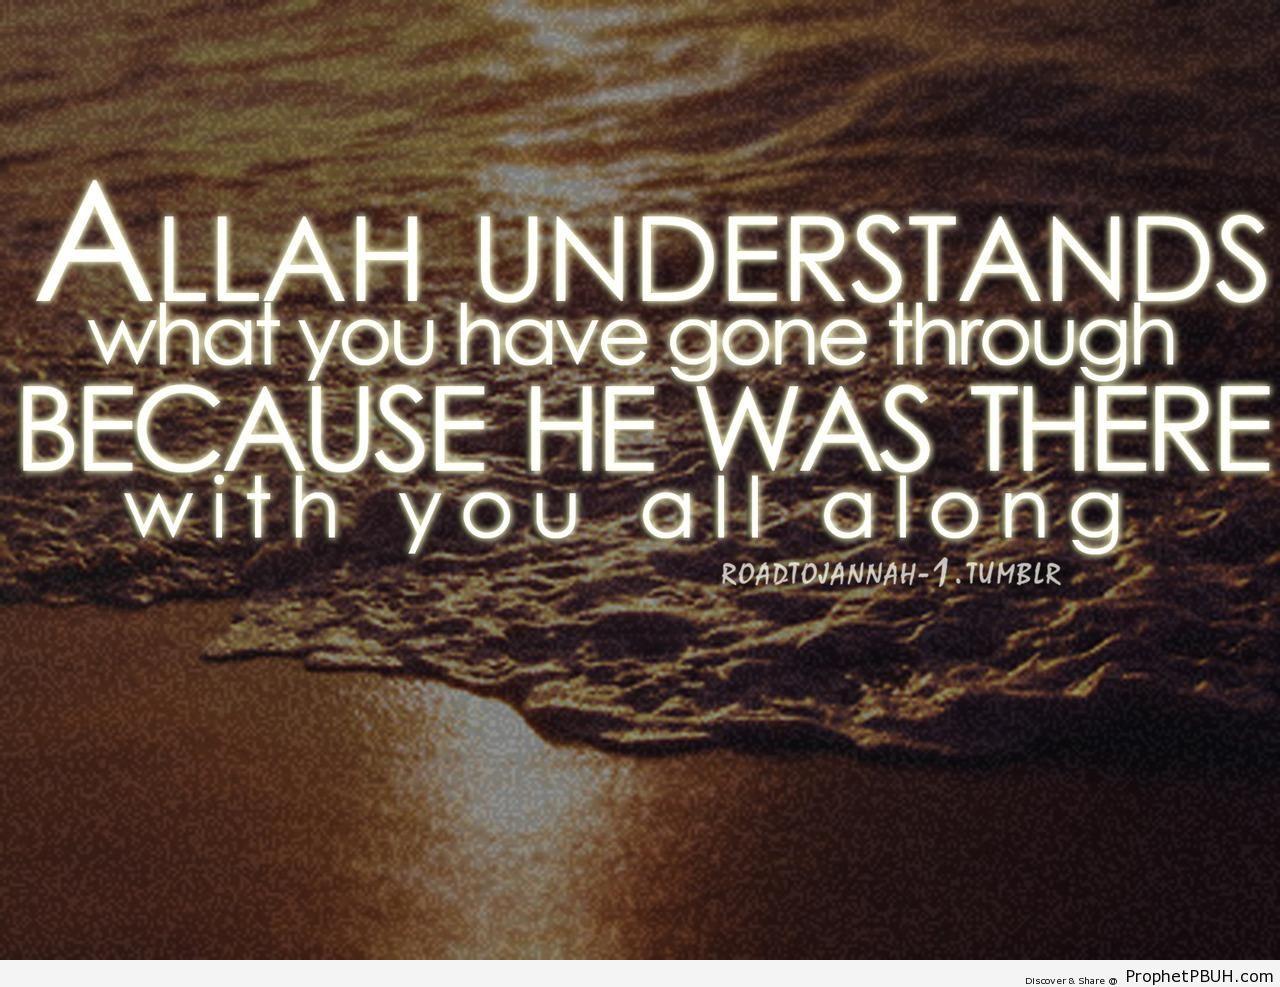 He Was There With You - Islamic Posters -